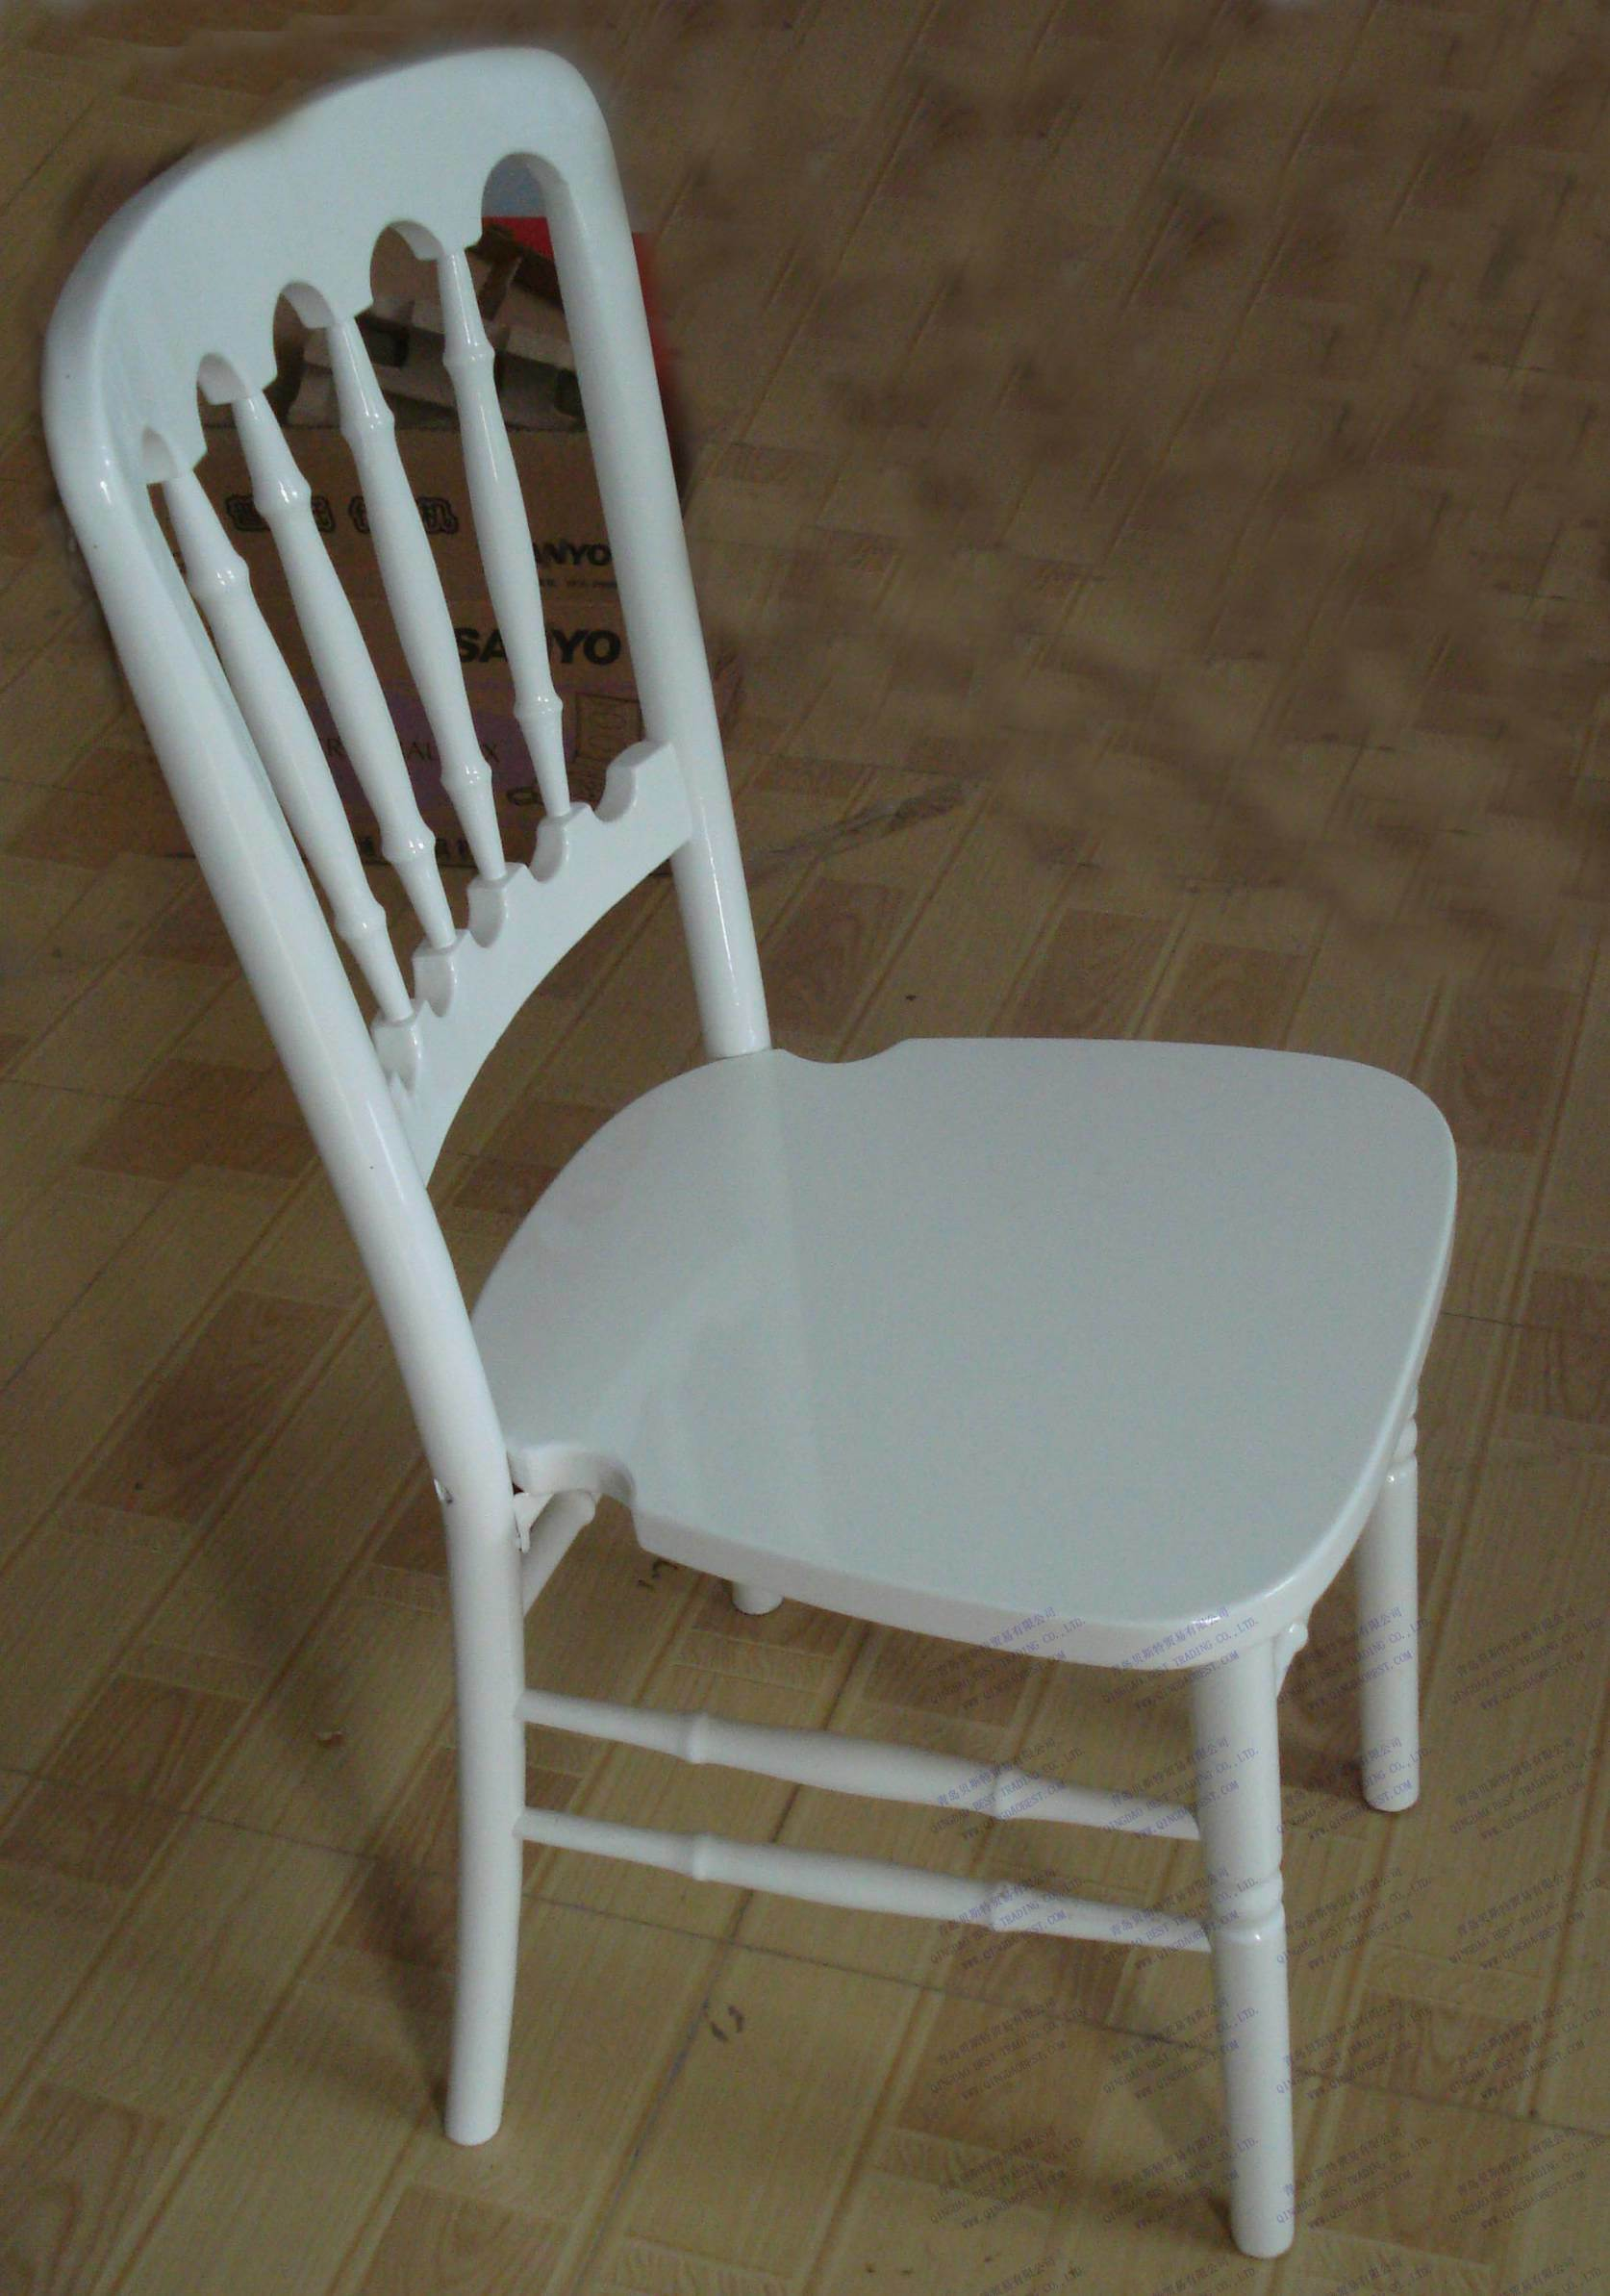 wedding wooden chairs banquet chair covers spandex white chateau bcc002 china hotel